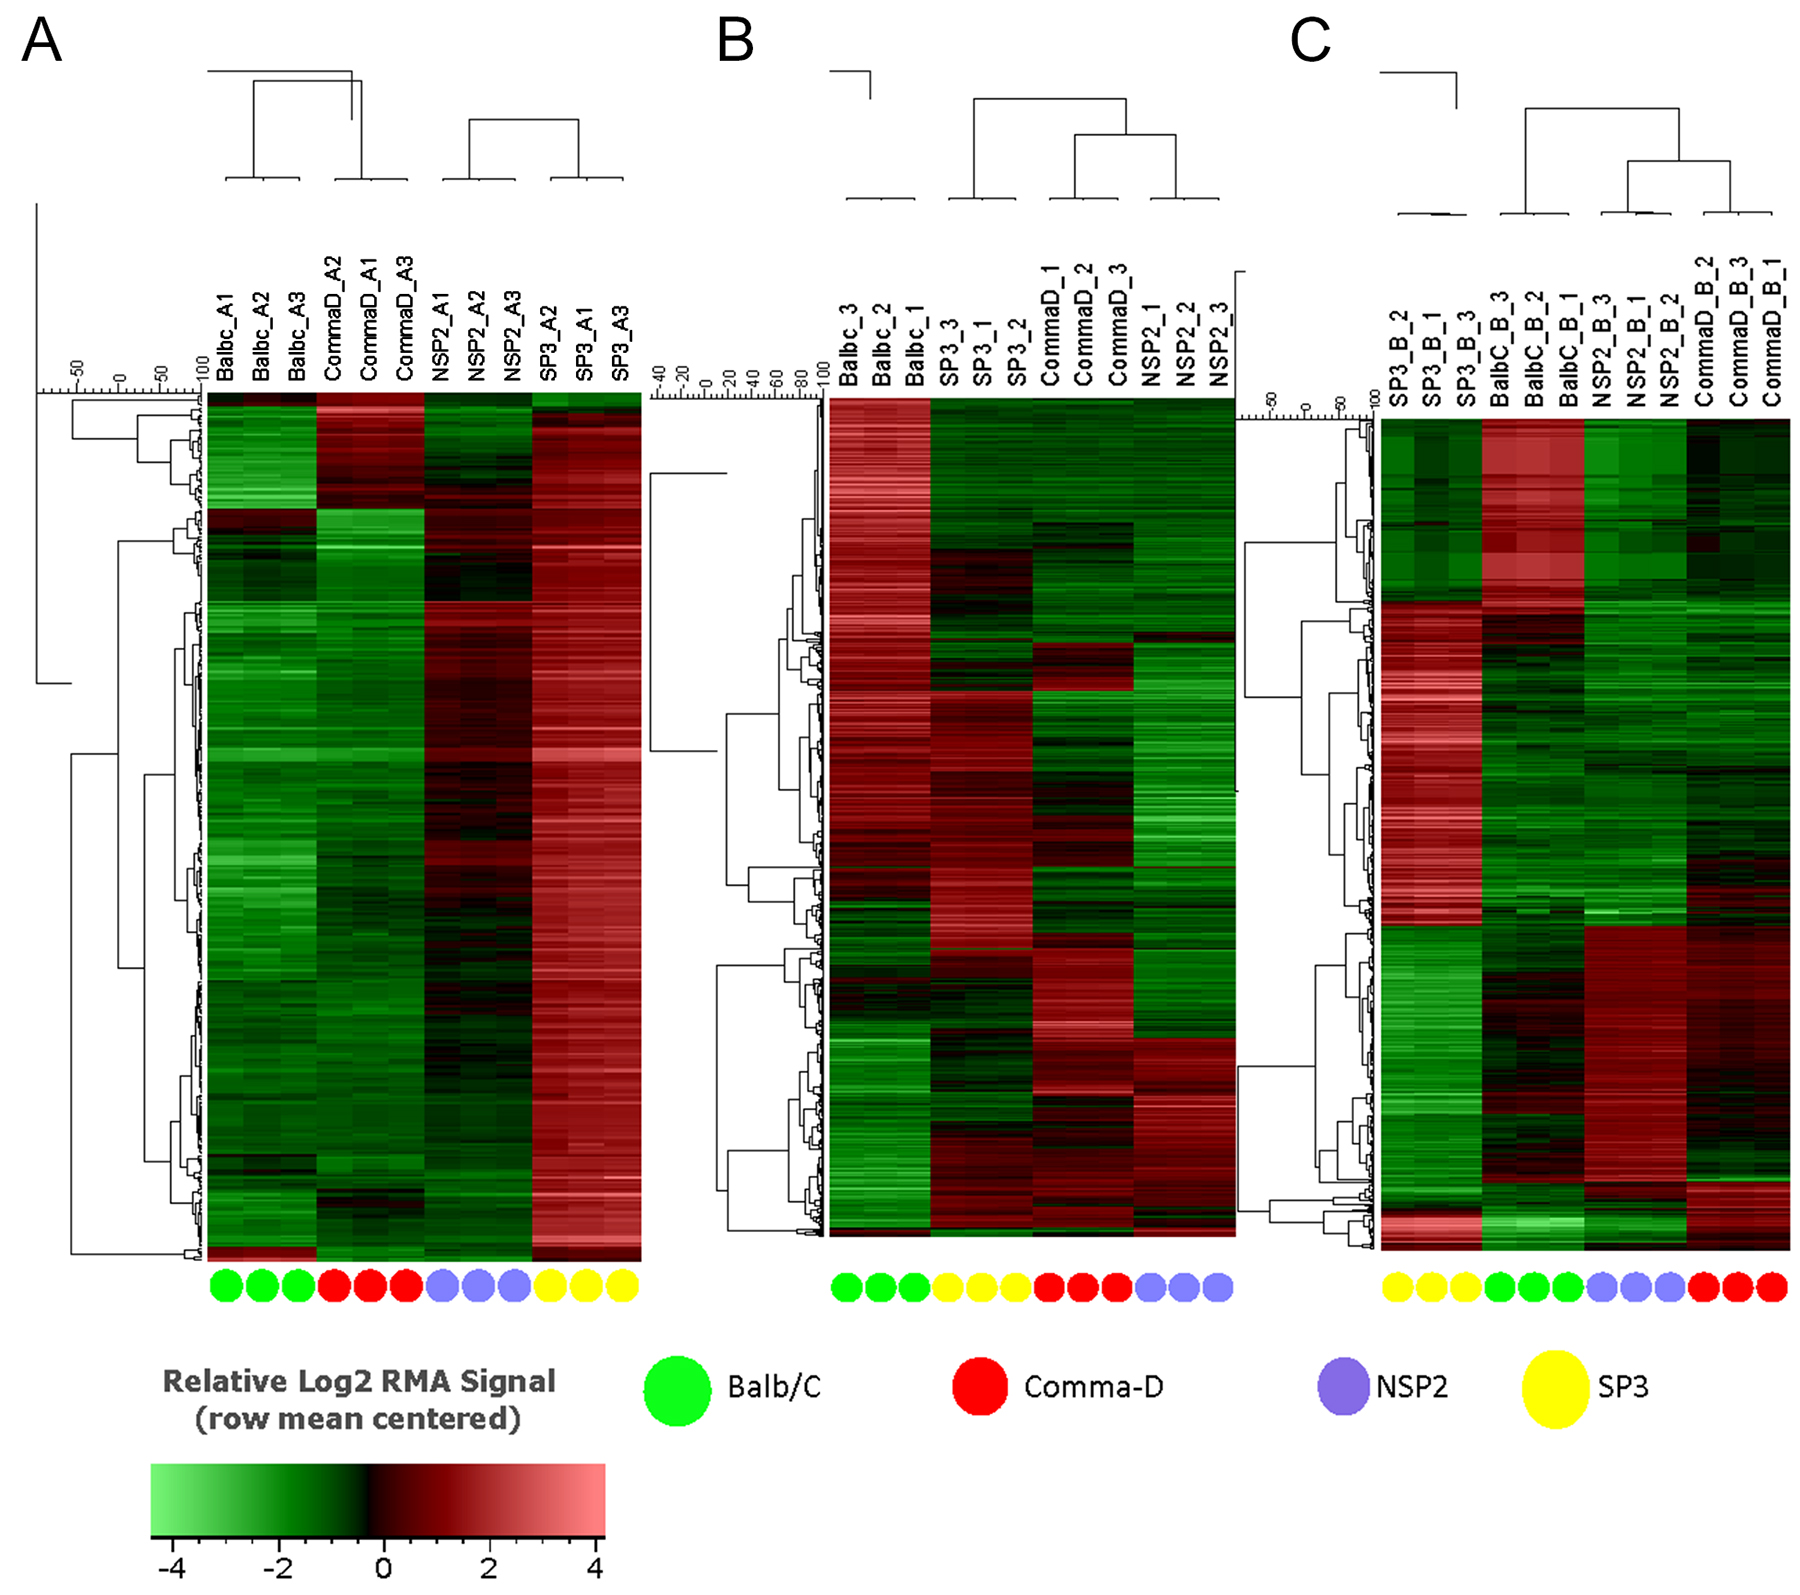 Hierarchical clustering of Balb/C, Comma-Dβ, NSP2, and SP3 cell line transcriptomes.